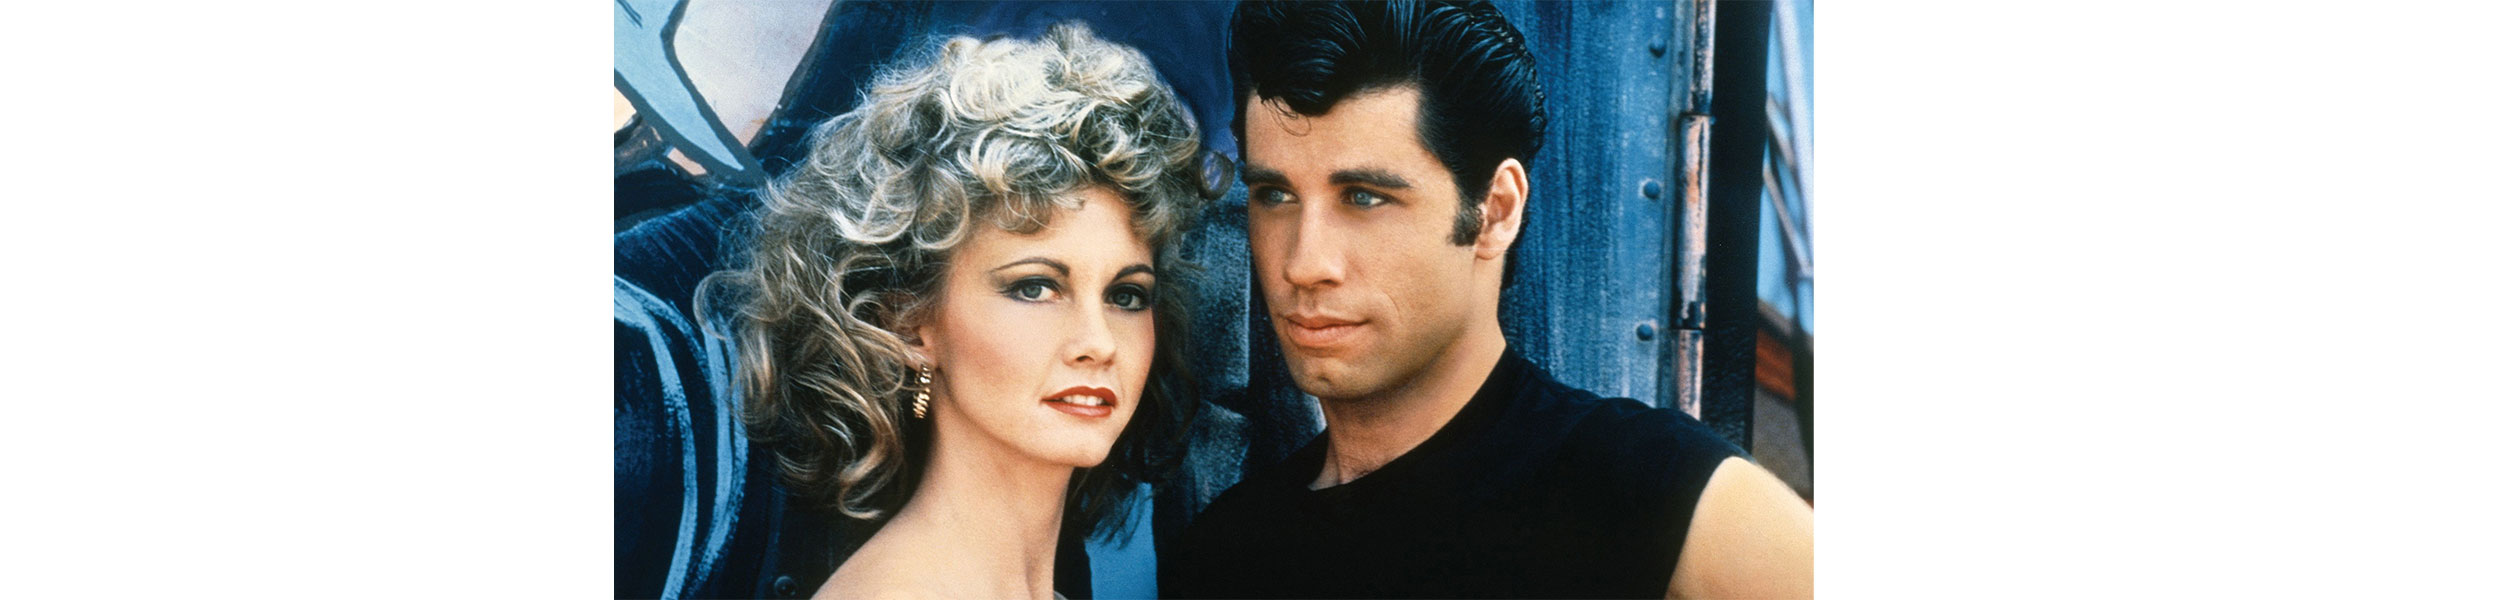 Outdoor Movies at Redwood Acres Fairgrounds – Grease